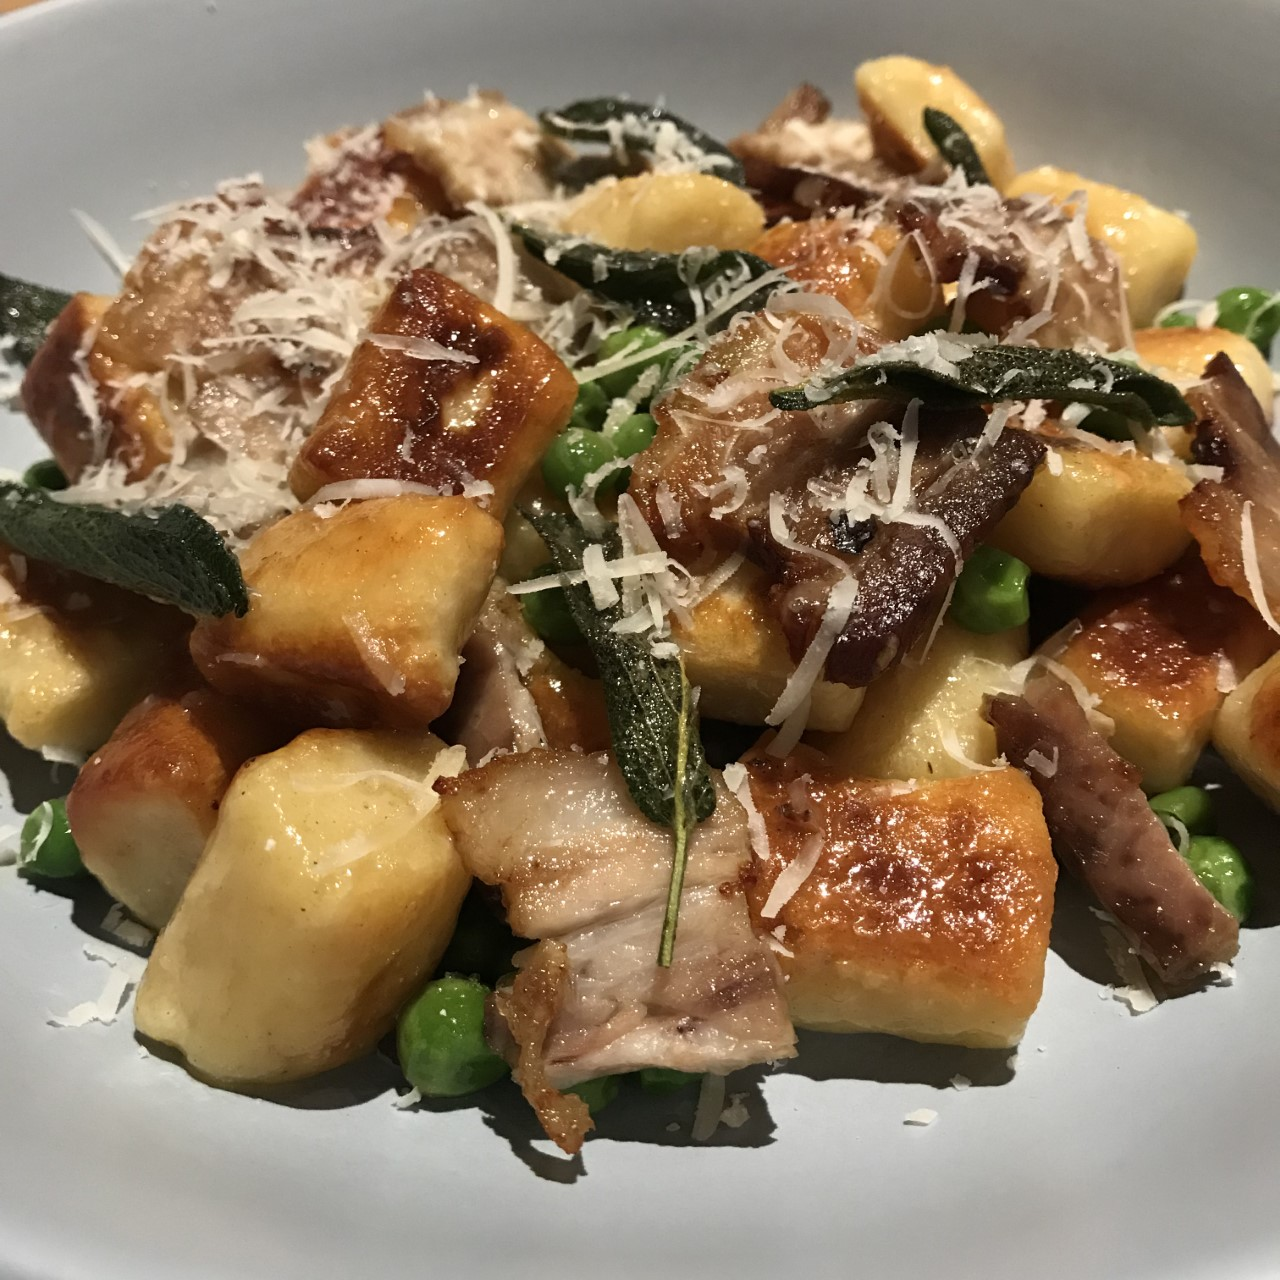 Gnocchi with peas and bacon